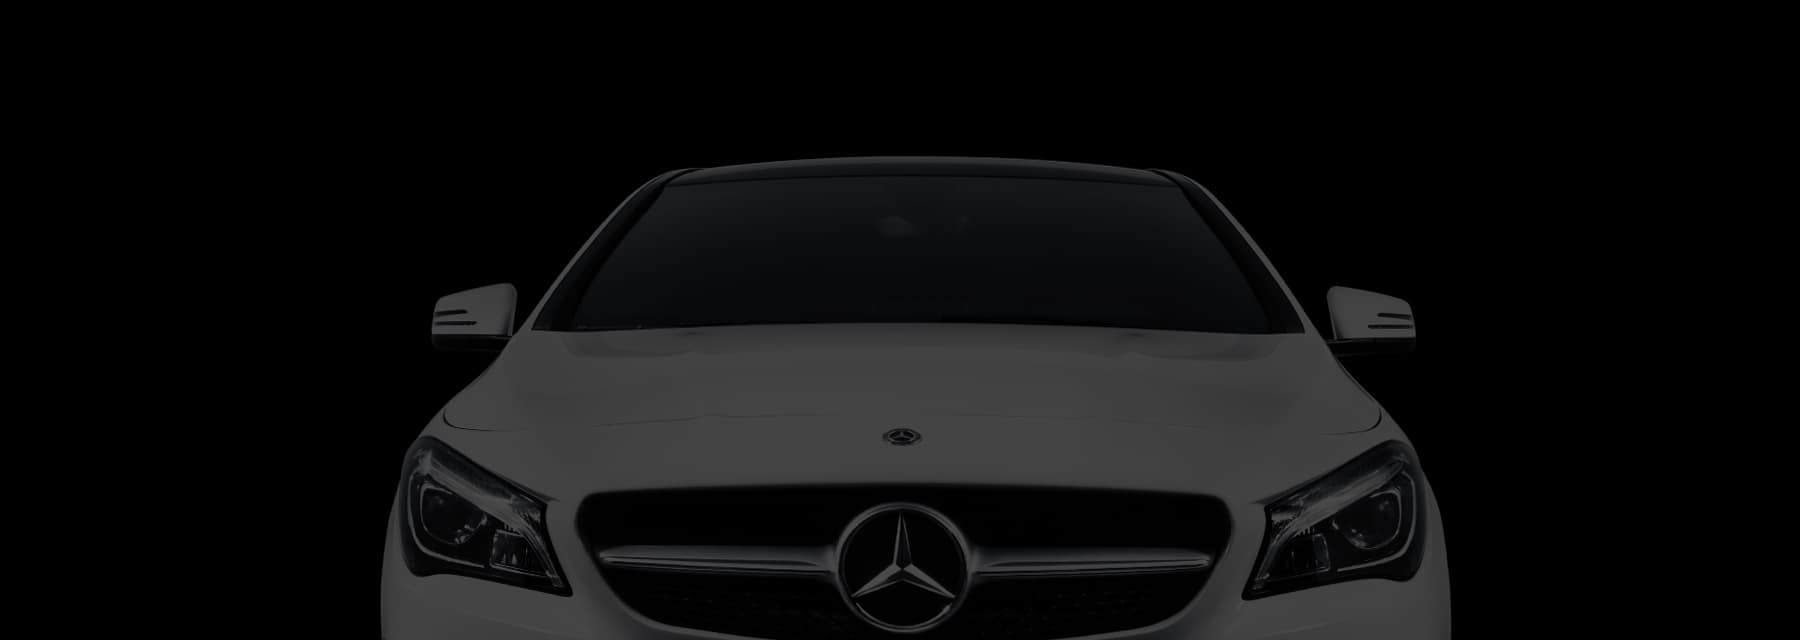 over lease mercedes la interior area benz take leasing white on vehicles img red forums